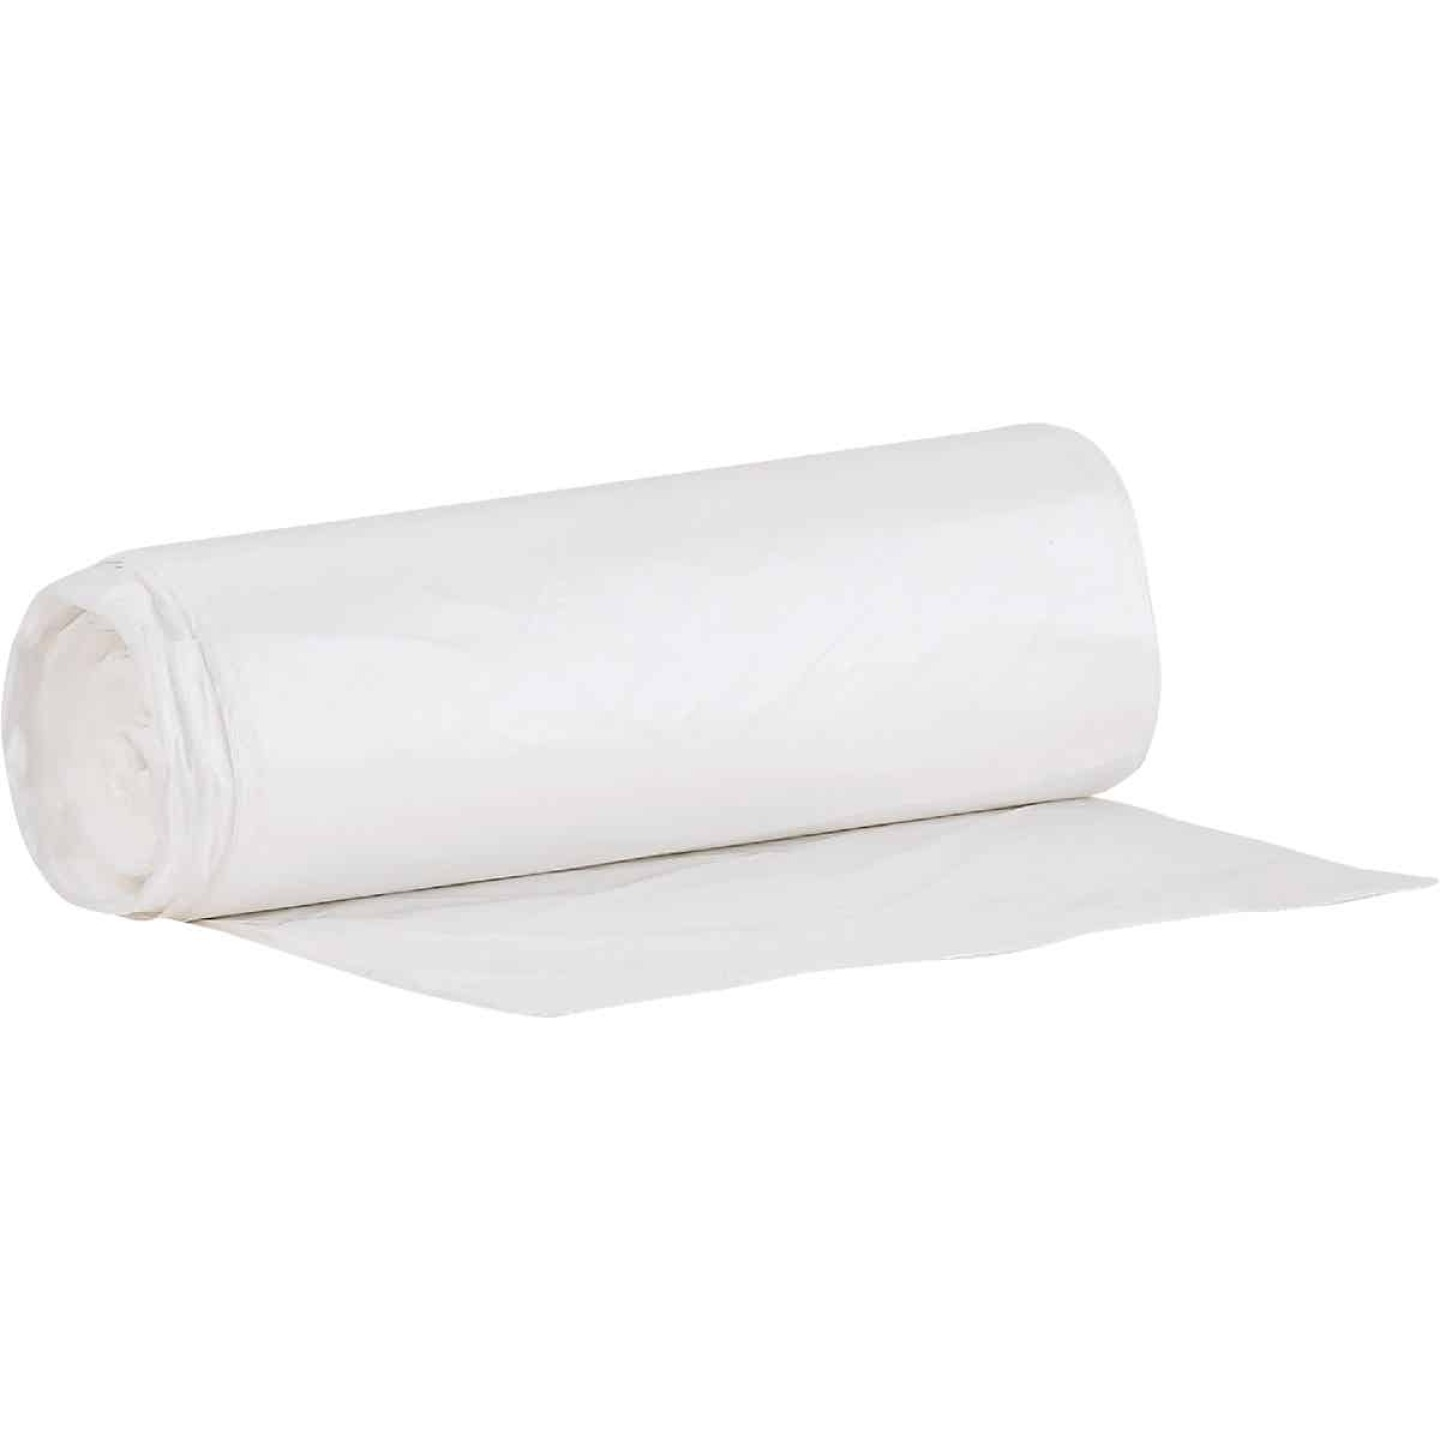 Performance Plus 33 Gal. Natural High Density Can Liner (500-Count) Image 1